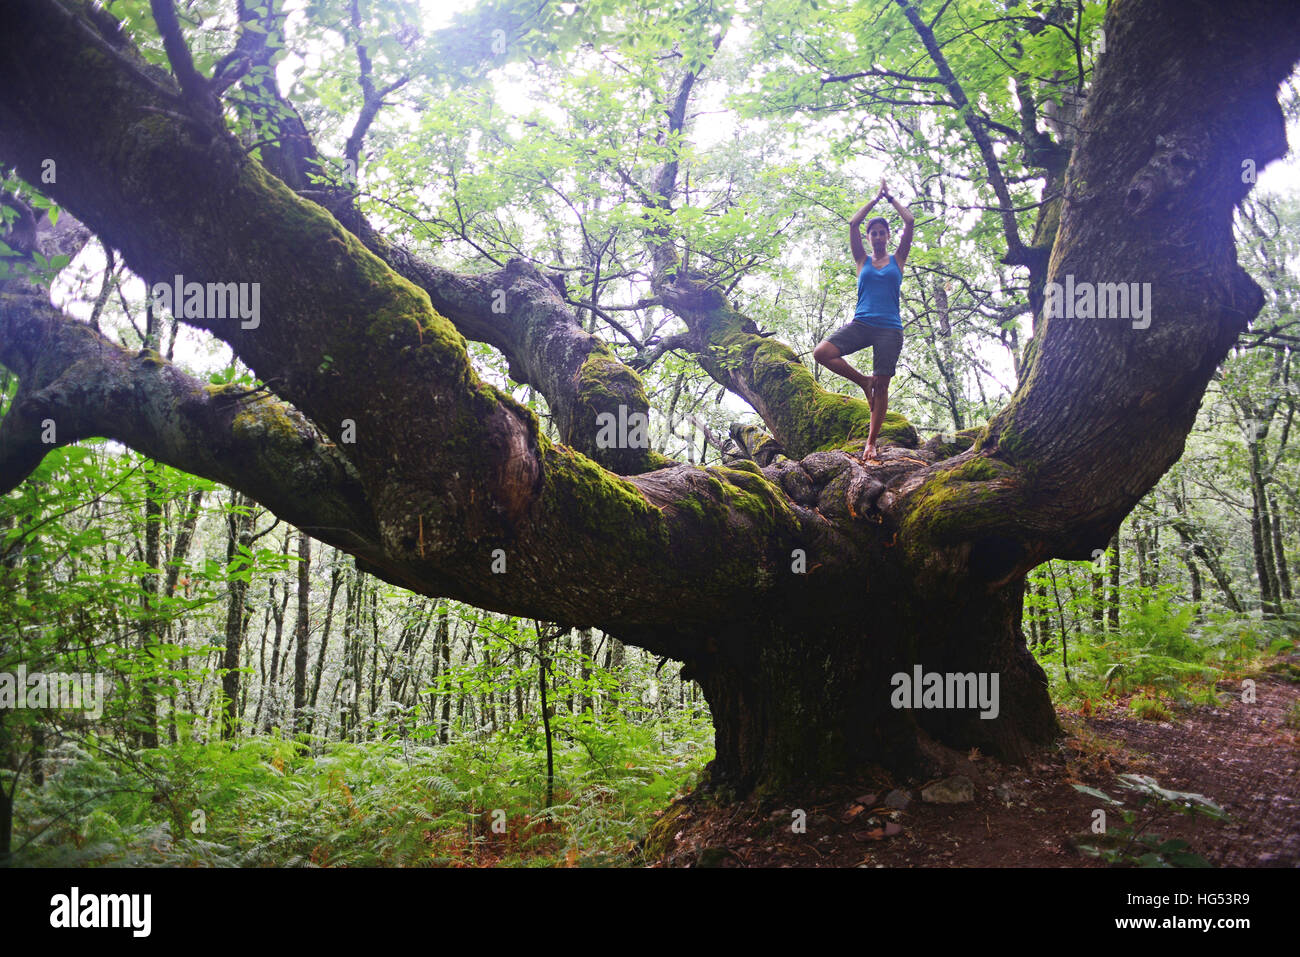 Young woman in tree pose on big chestnut tree. - Stock Image